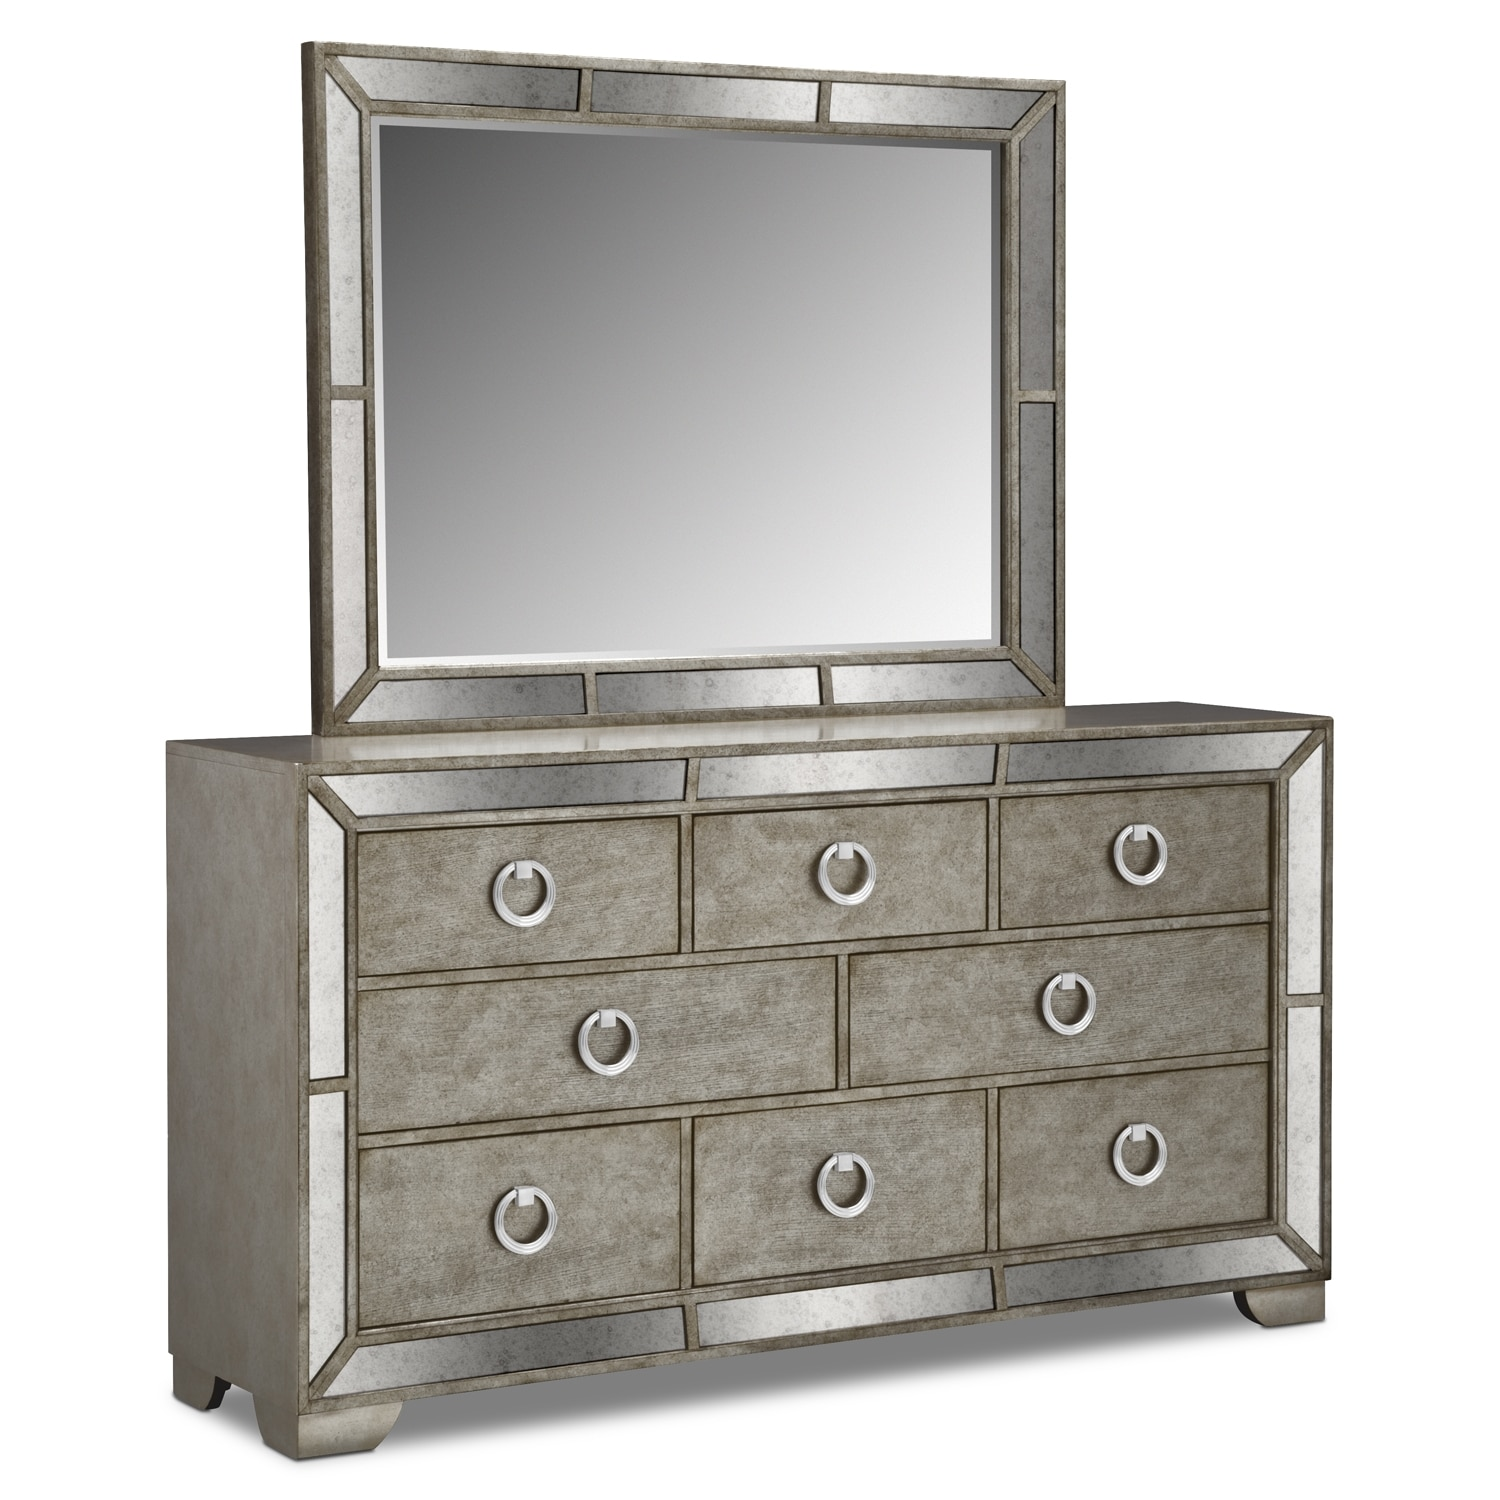 Angelina Dresser and Mirror - Metallic